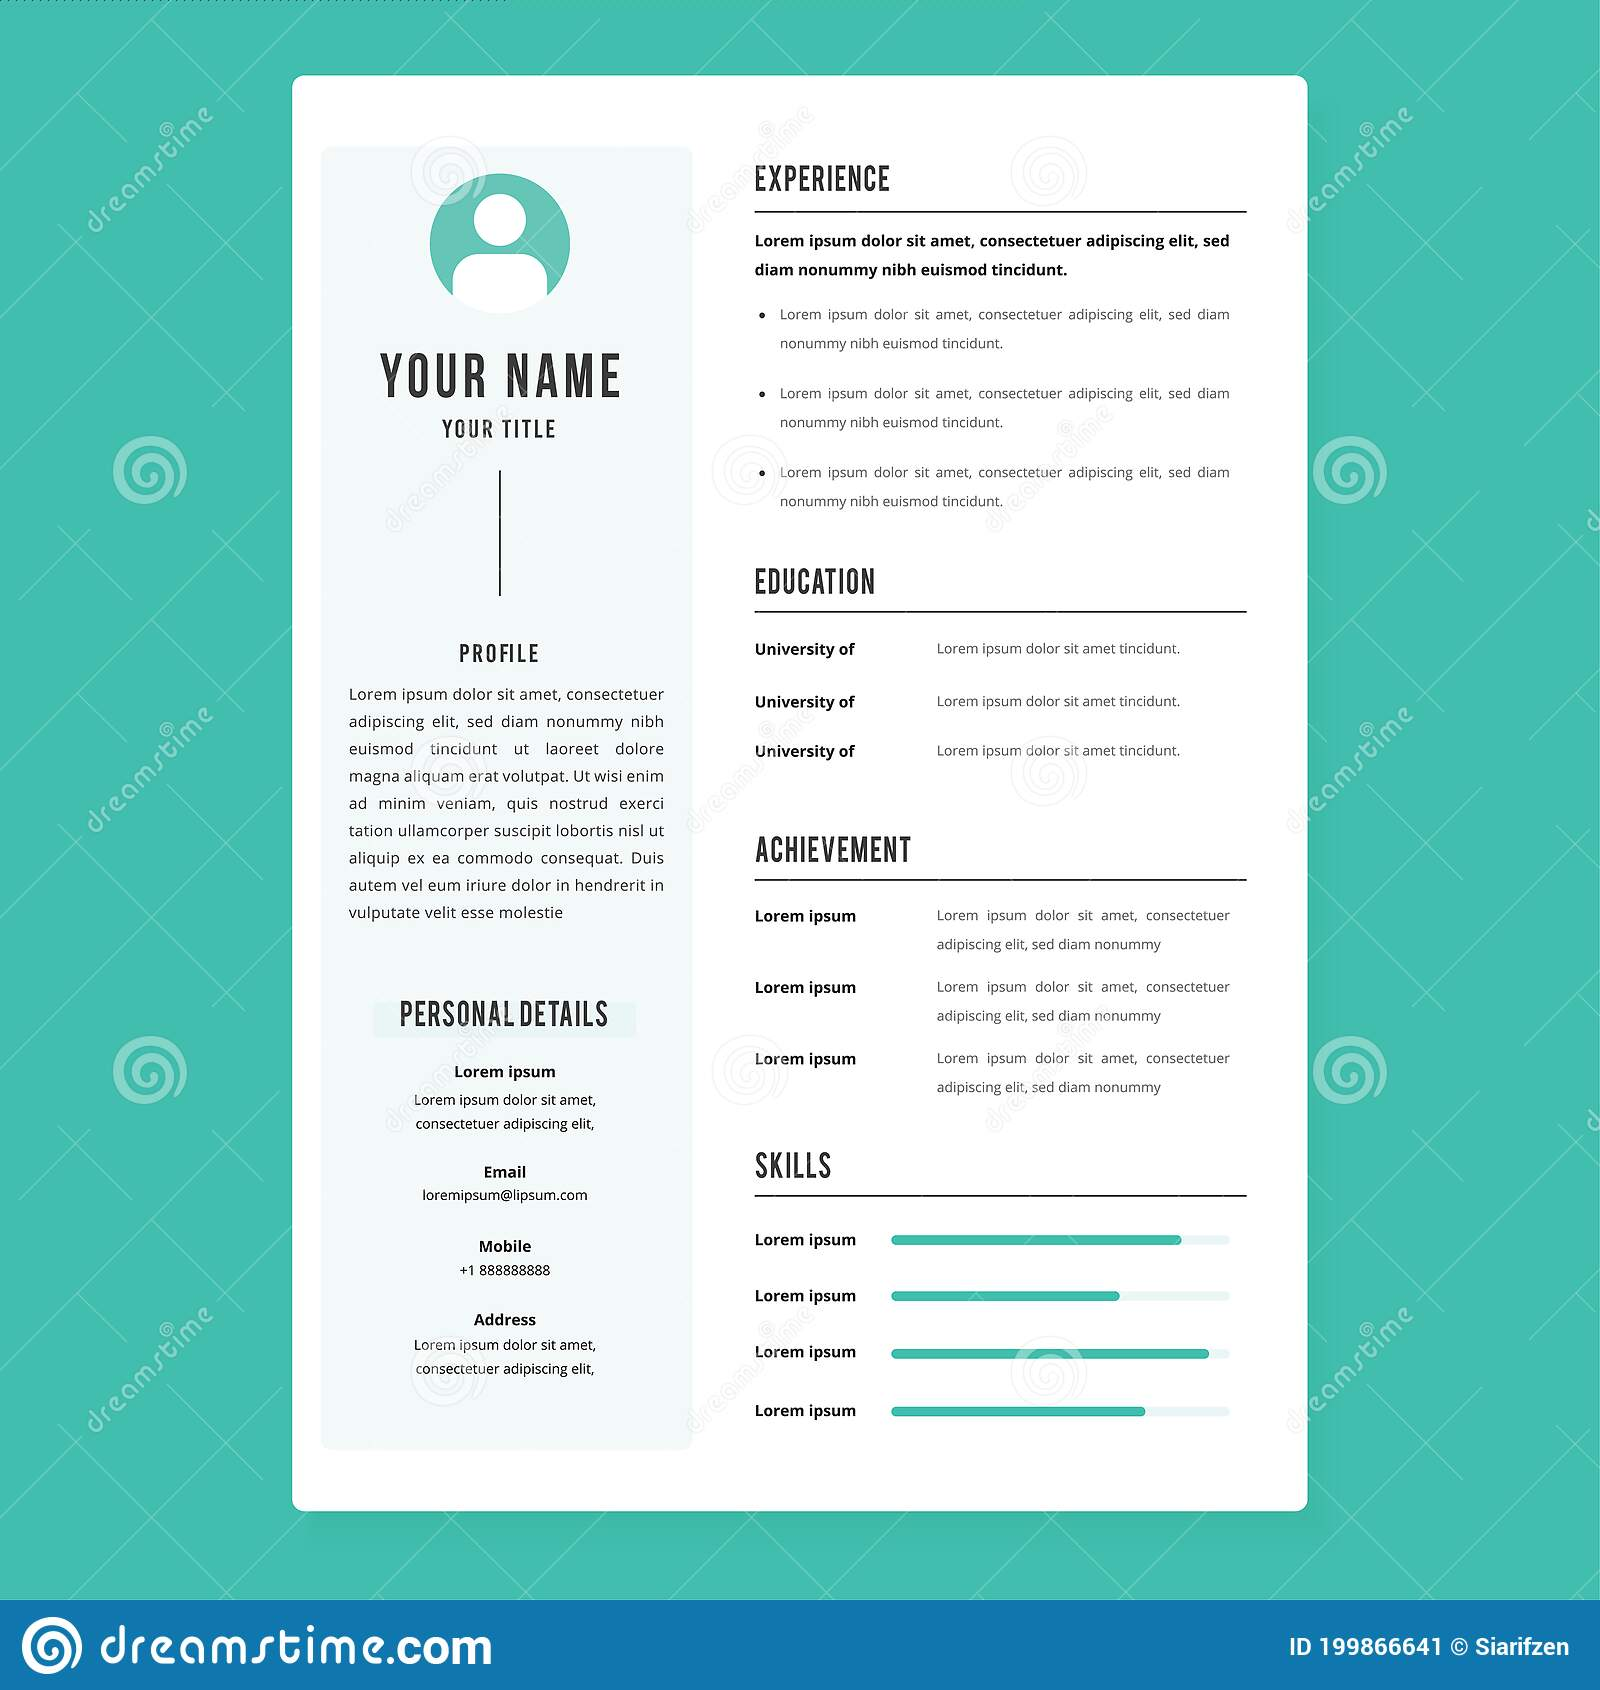 professional cv resume template design and letterhead cover letter vector minimalist nice Resume Professional Resume Letterhead